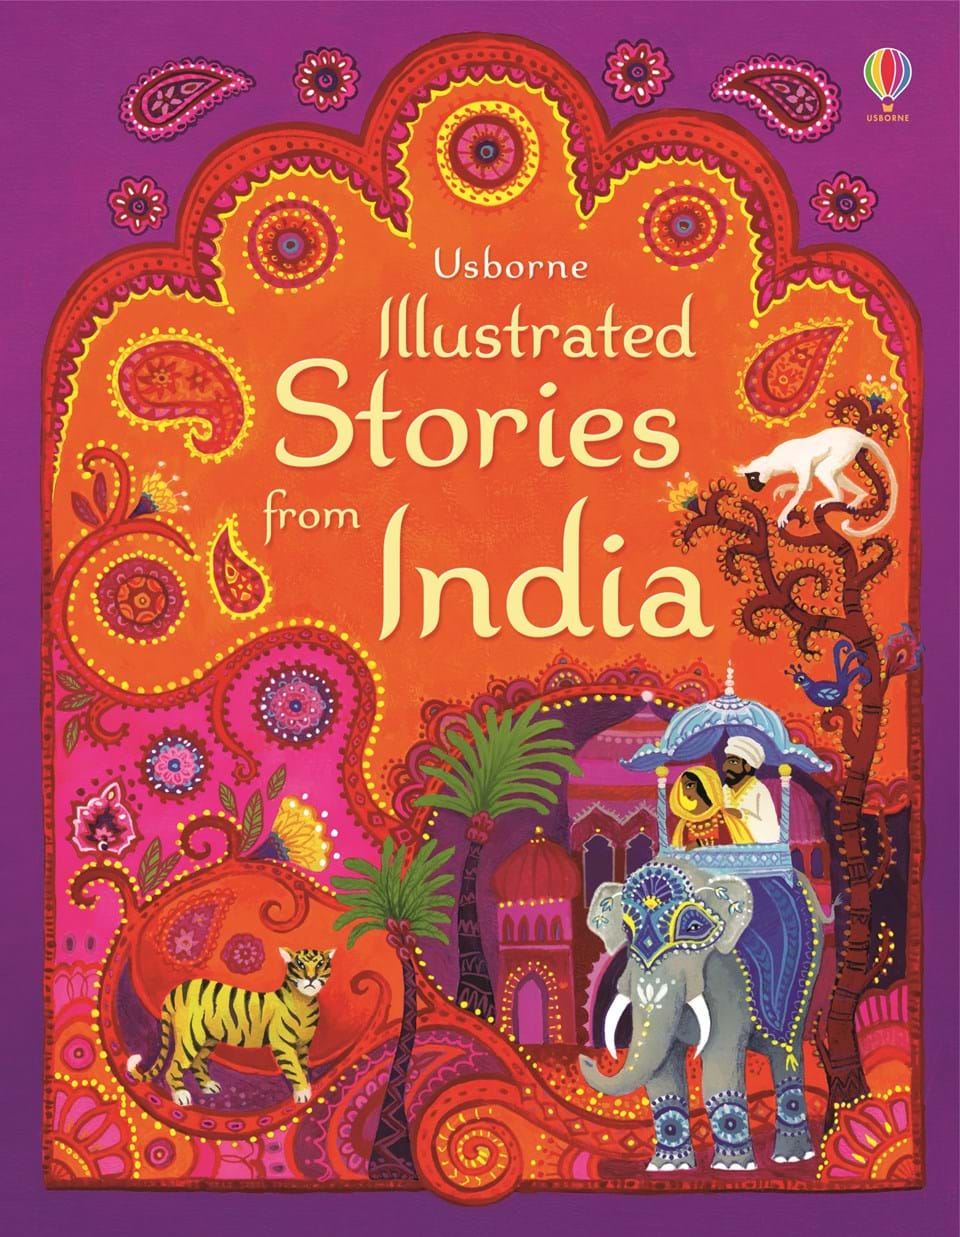 """Illustrated Children S Book Covers : """"illustrated stories from india at usborne children s books"""